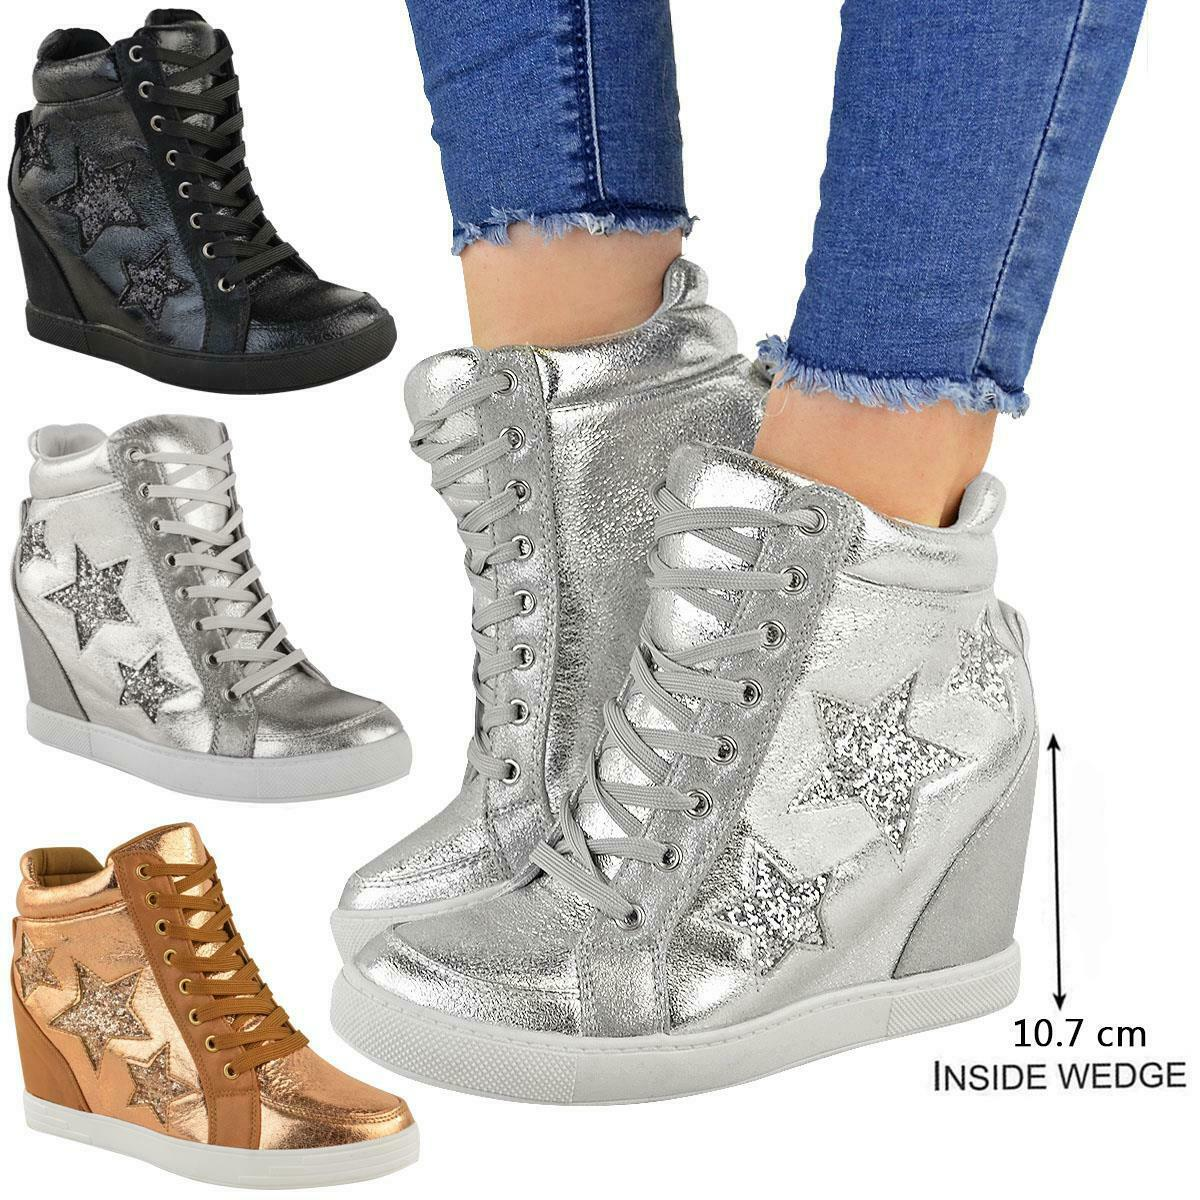 WOMENS BLUE WHITE WEDGE LACE-UP BASEBALL HI-TOP ANKLE BOOTS TRAINER SHOES 3-8